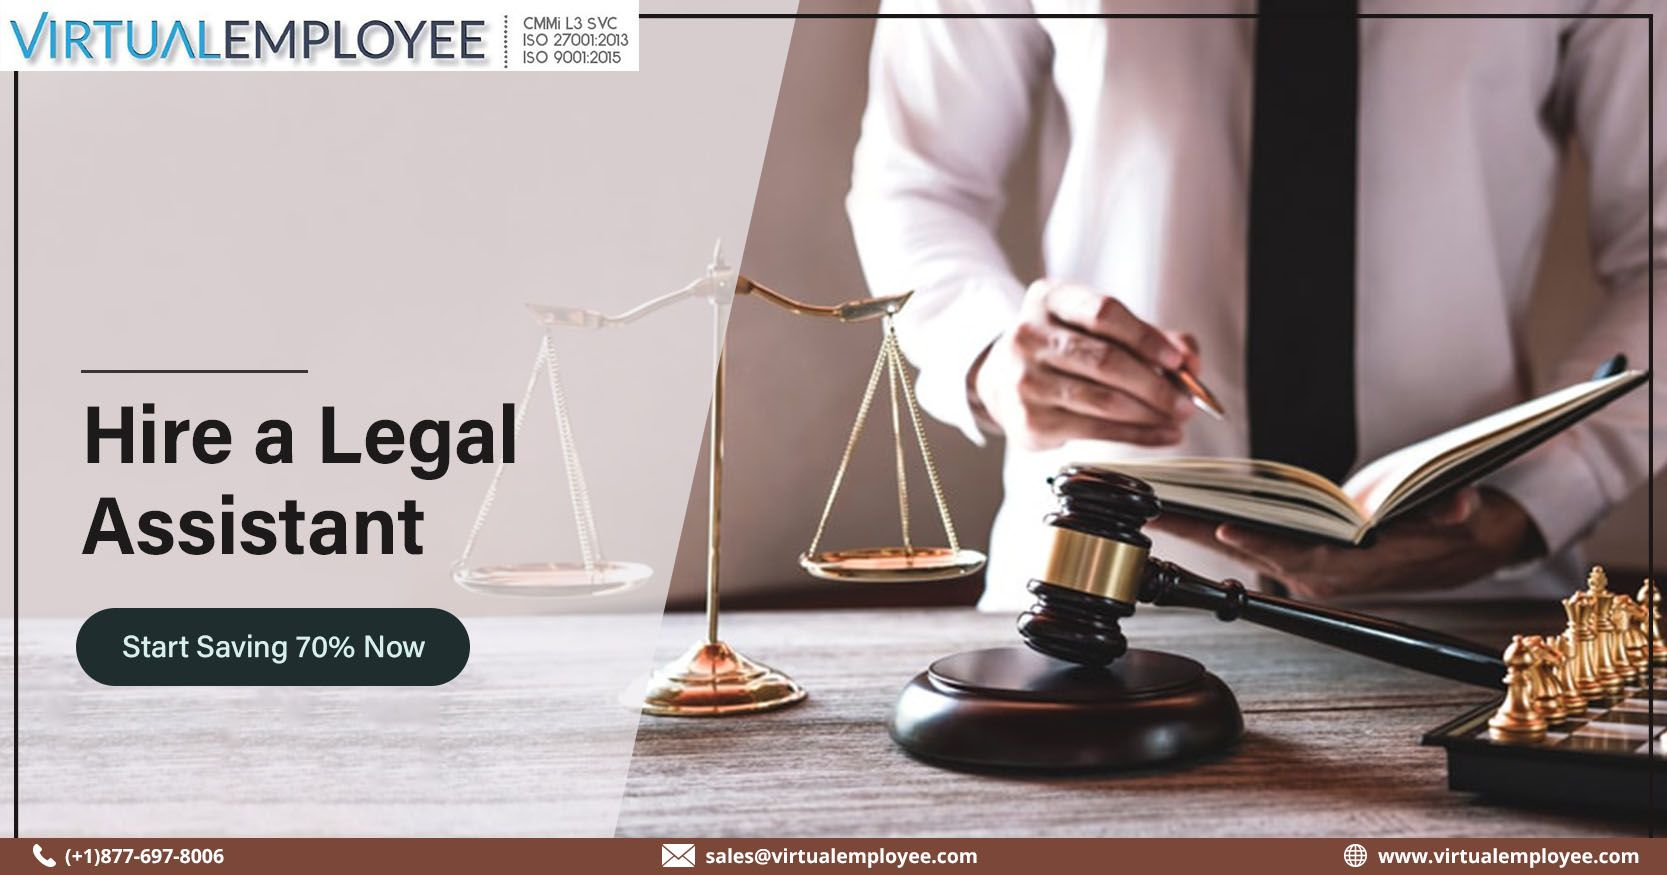 Legal assistants play an important role in every business